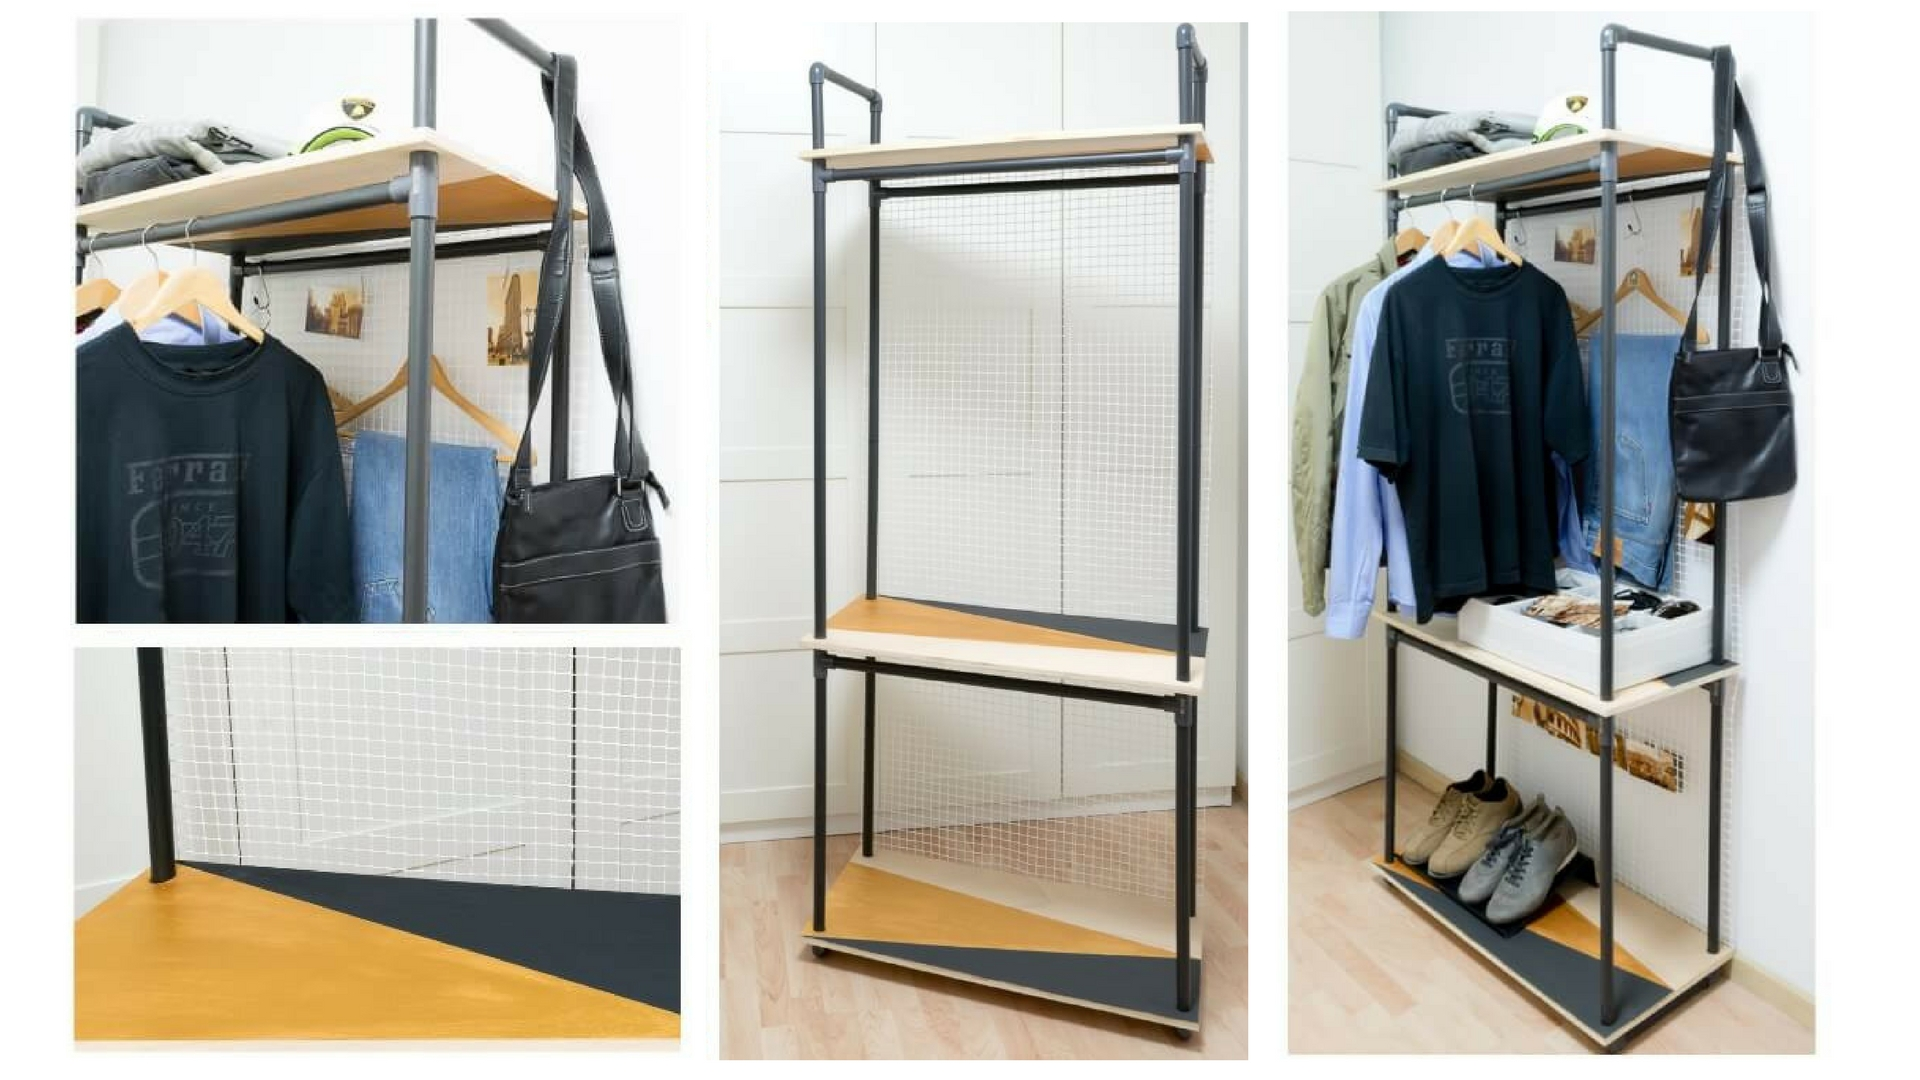 Diy Pvc Pipe Clothes Rack The Handy Mano